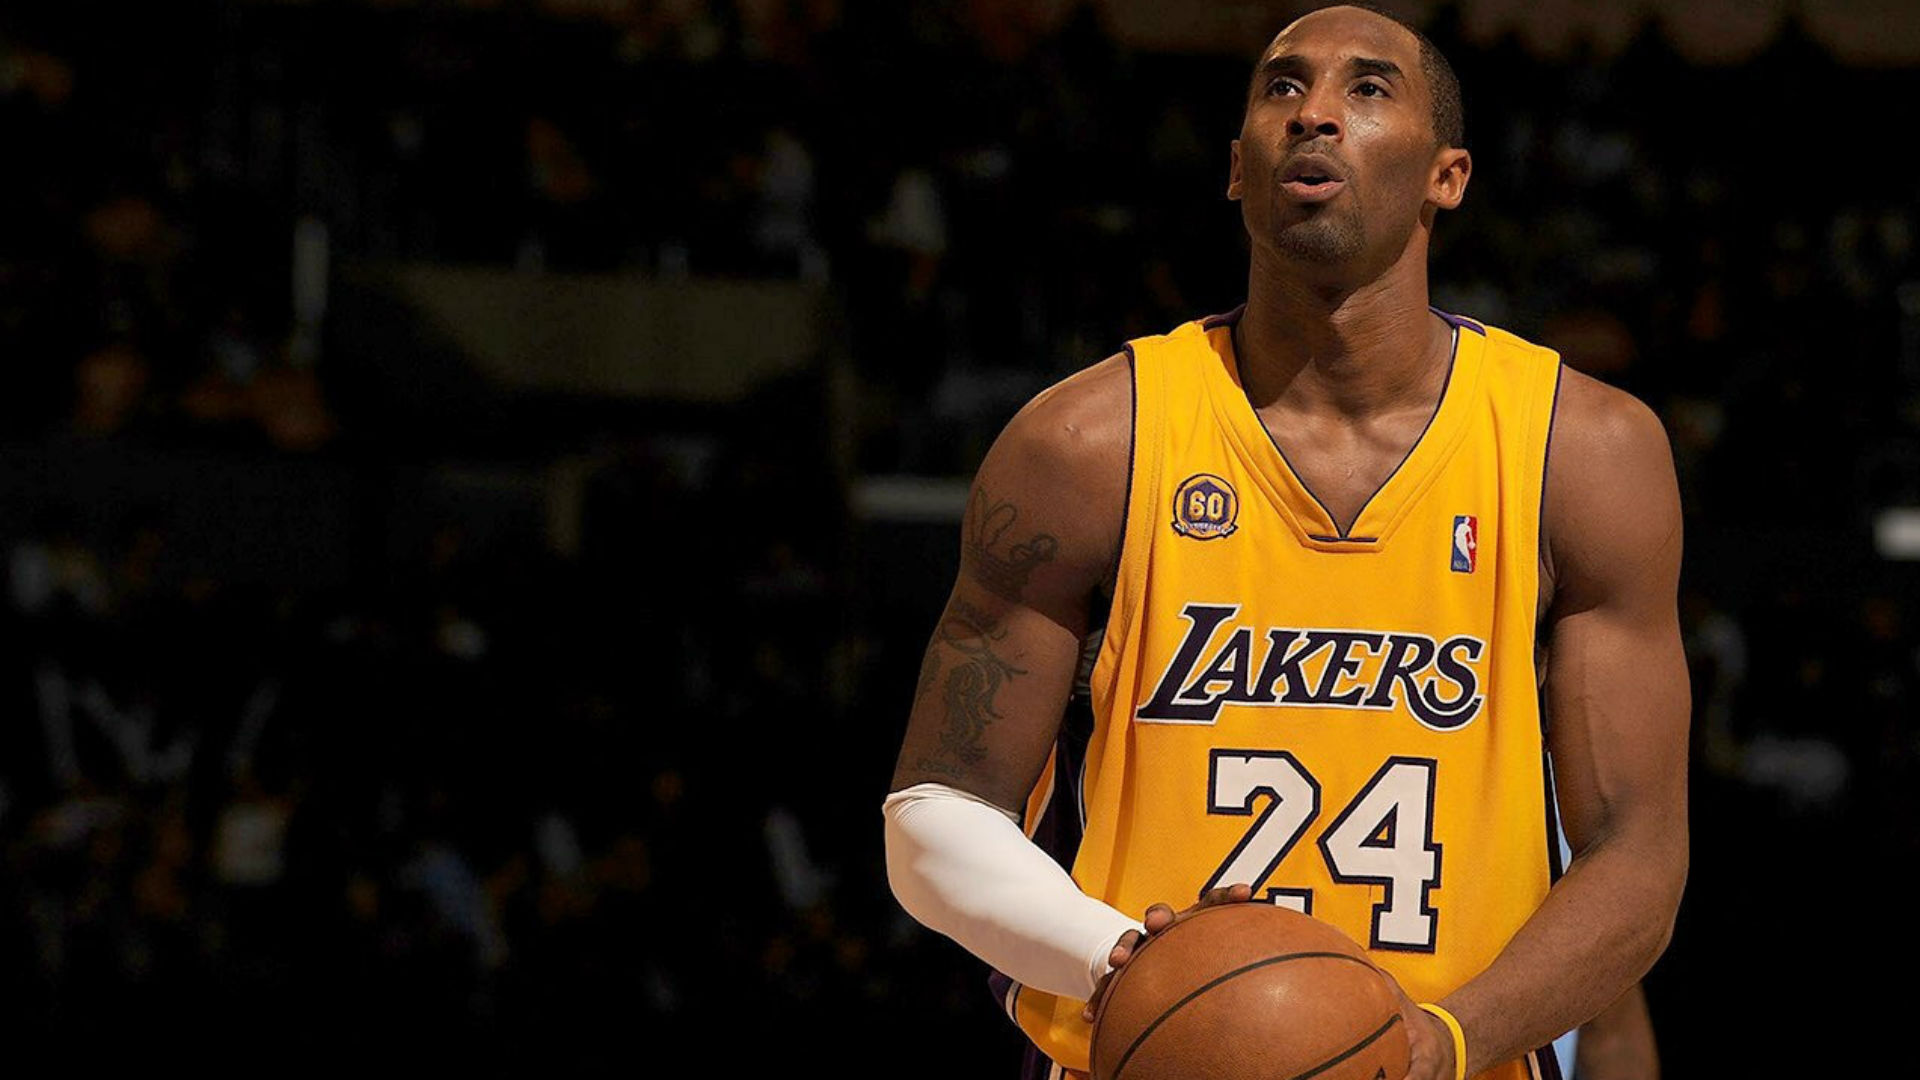 Kobe Bryant We Will Always Remember You East African Clubs United In Mourning Goal Com